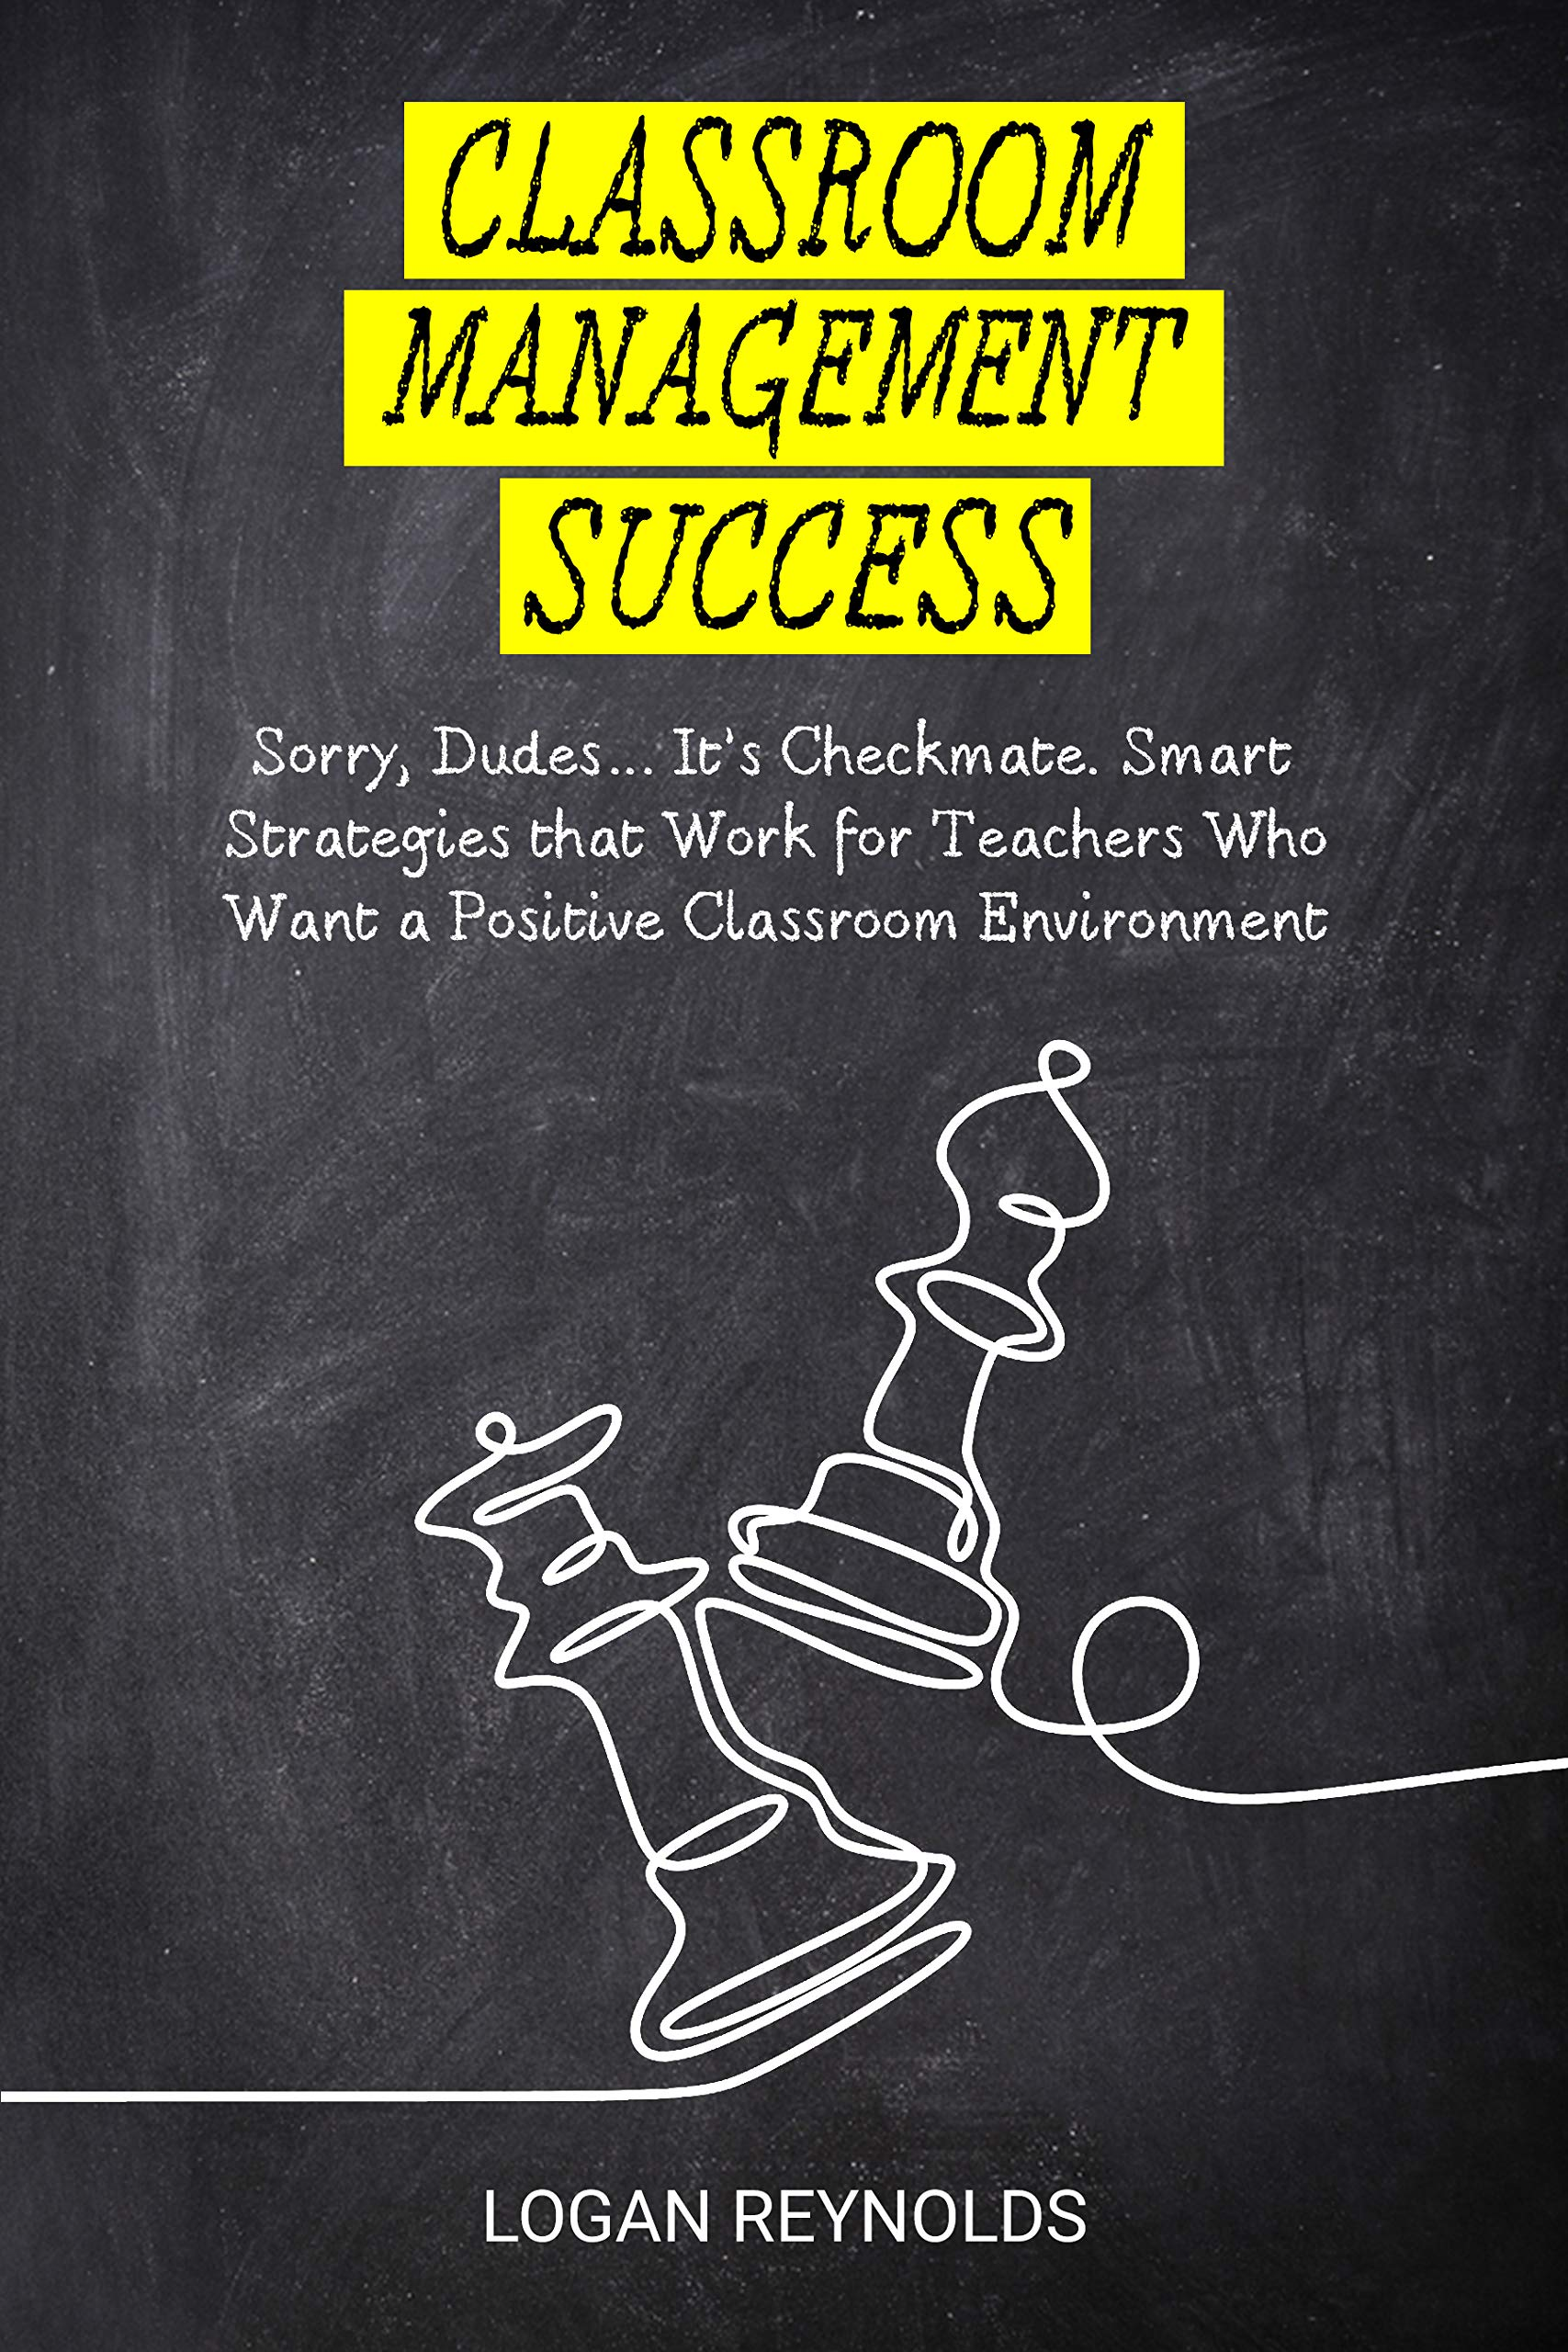 Classroom Management Success: Sorry Dudes… It's Checkmate. Smart Strategies that Work for Teachers Who Want a Positive Classroom Environment. (Student Engagement Tools) (English Edition)